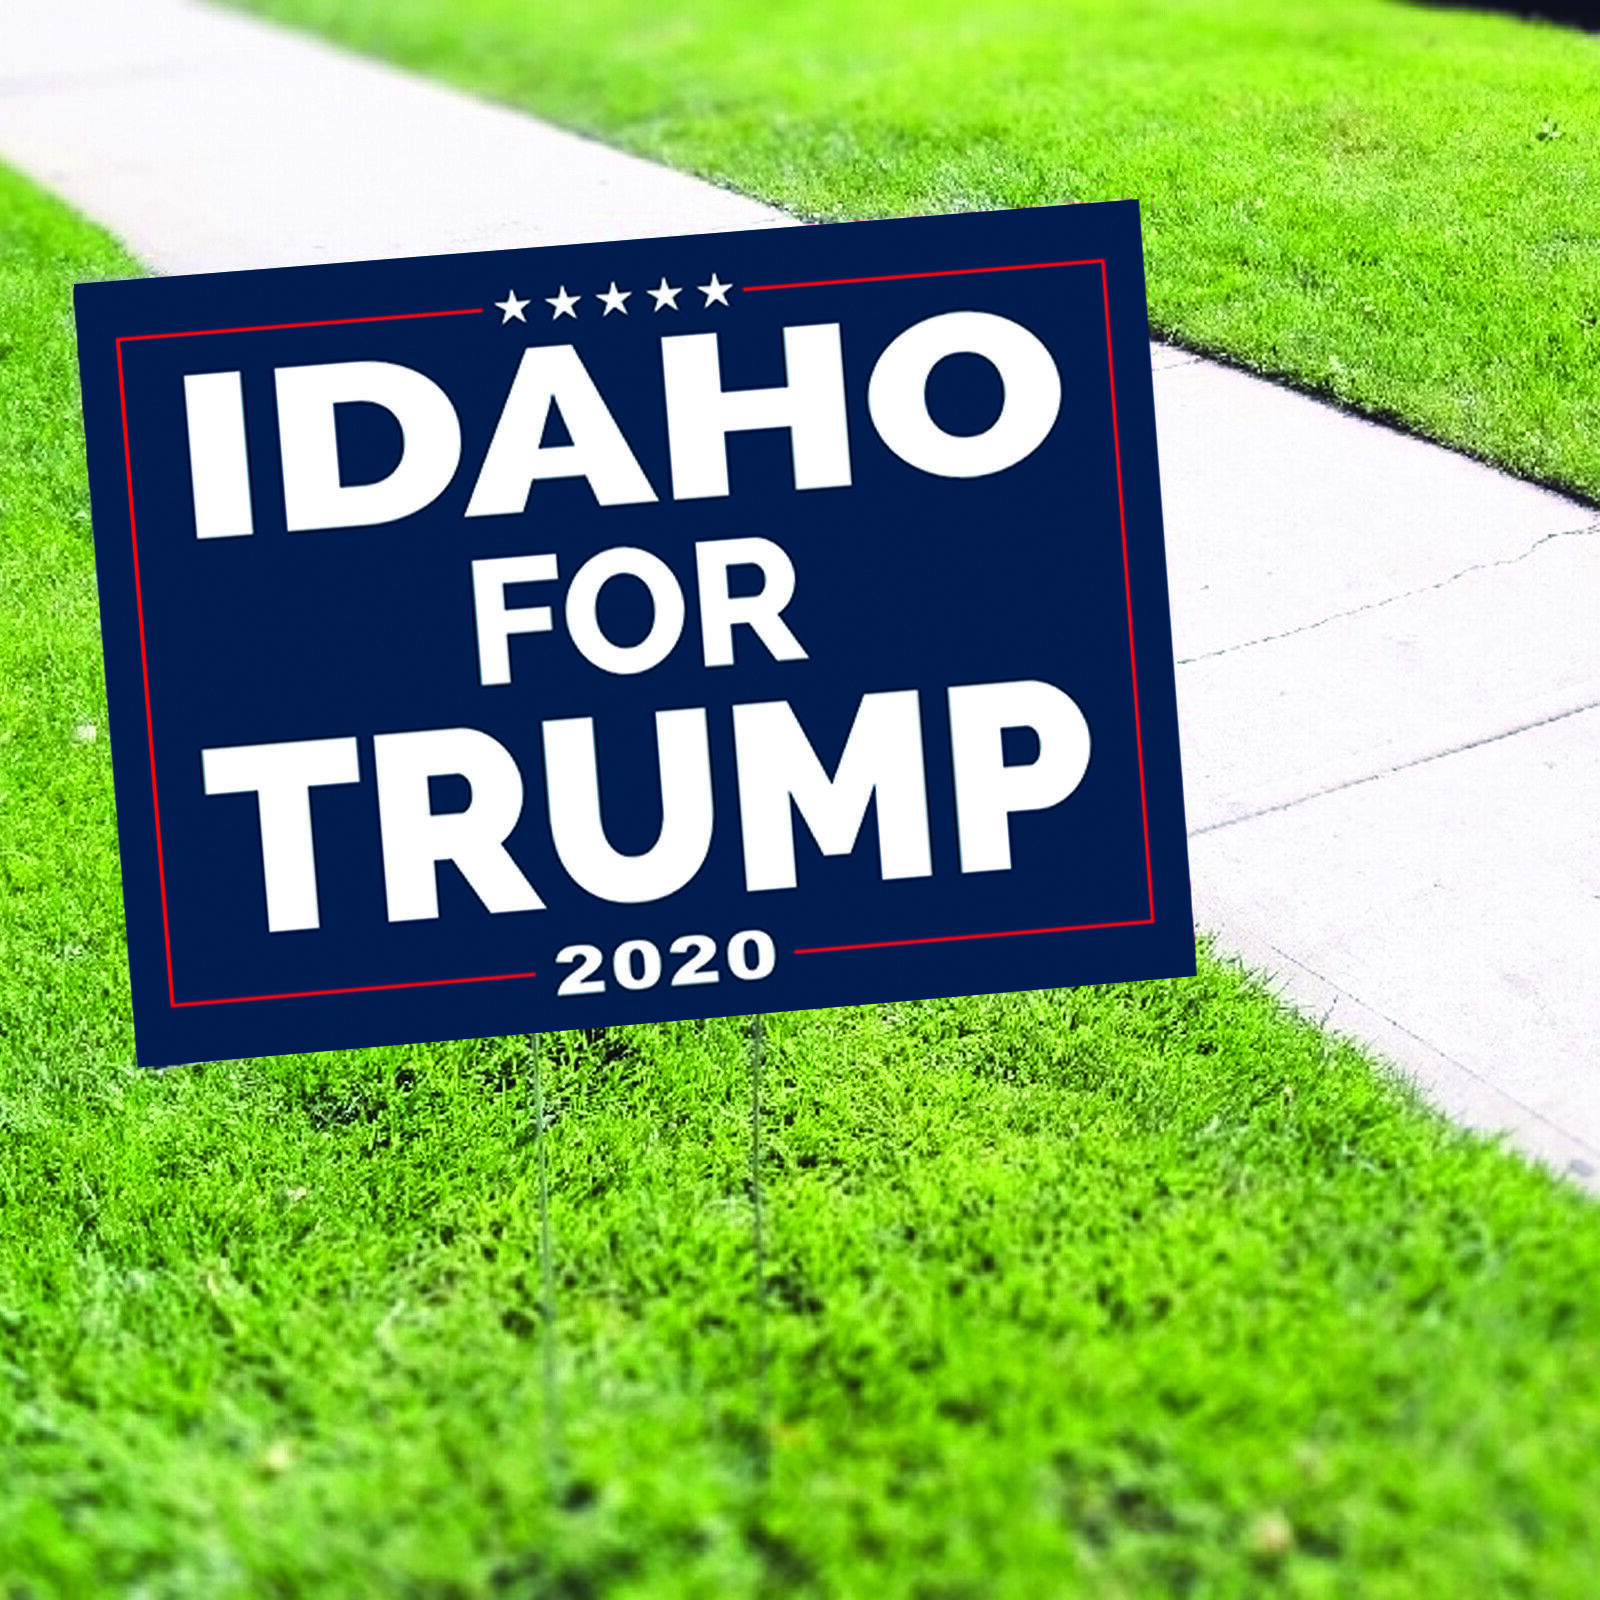 Idaho For Trump 2020 Vote for Trump USA President Election Yard Sign